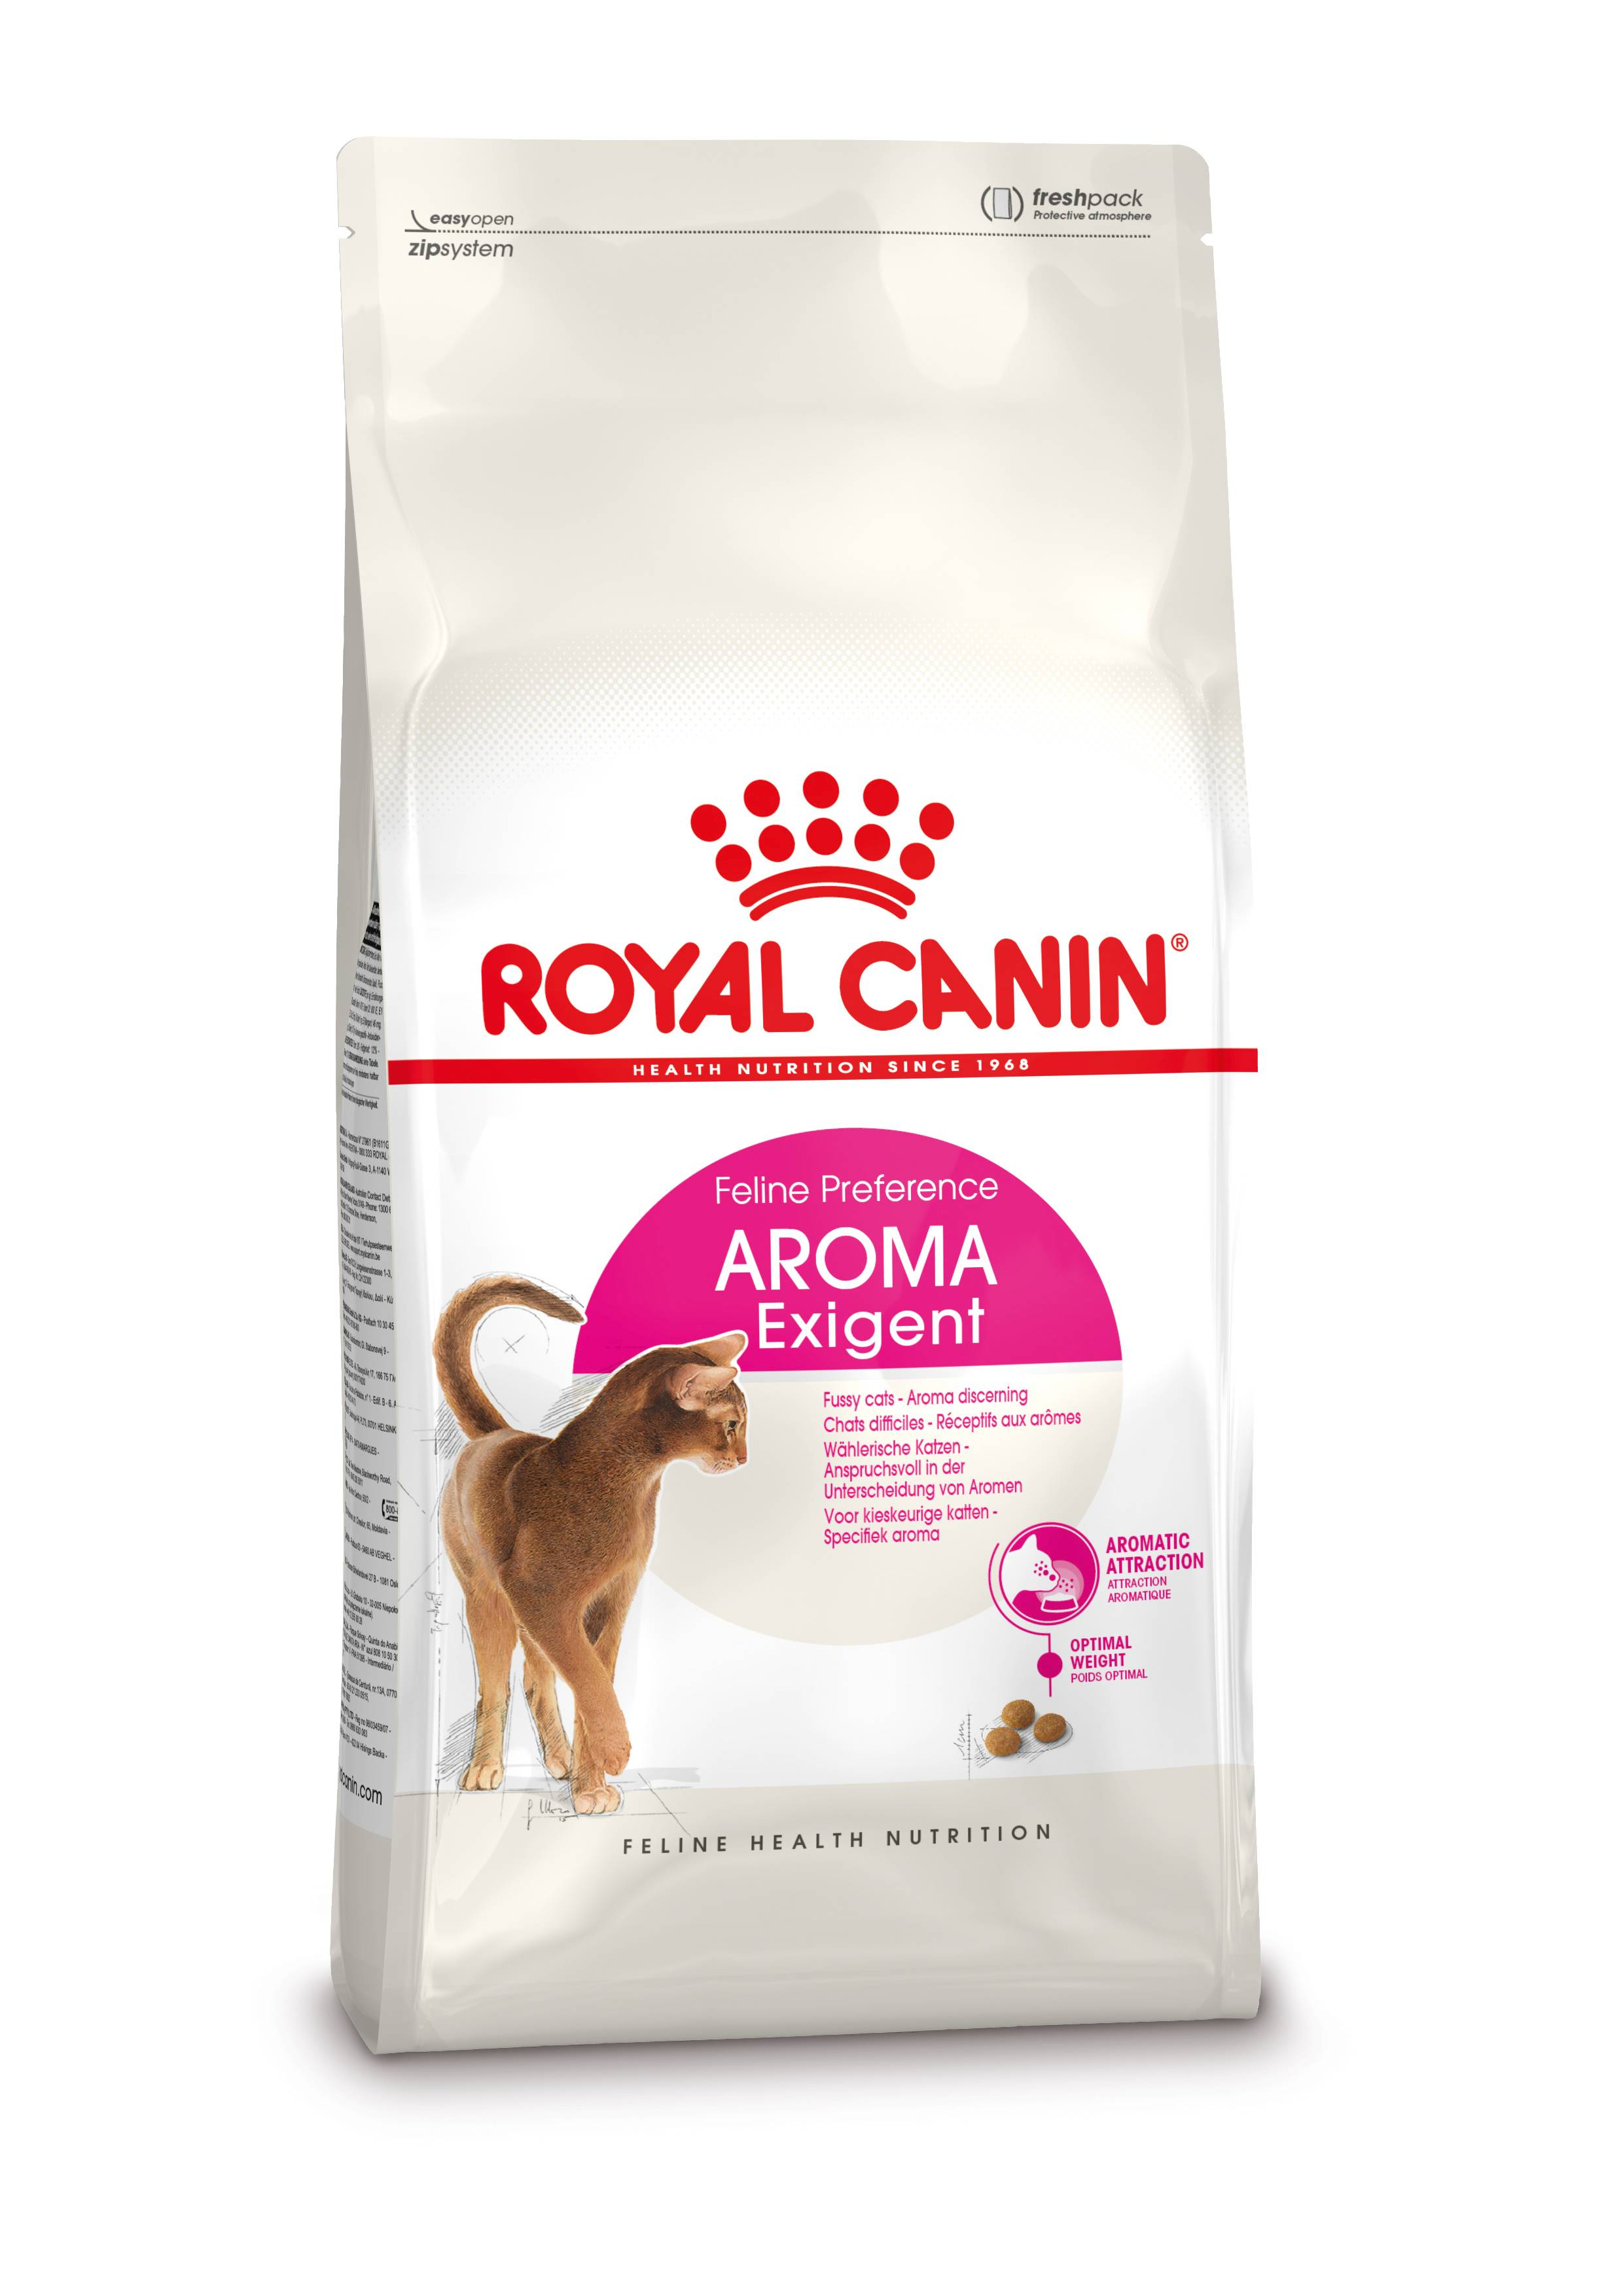 Royal Canin Aroma Exigent pour Chats 2 x 10 kg